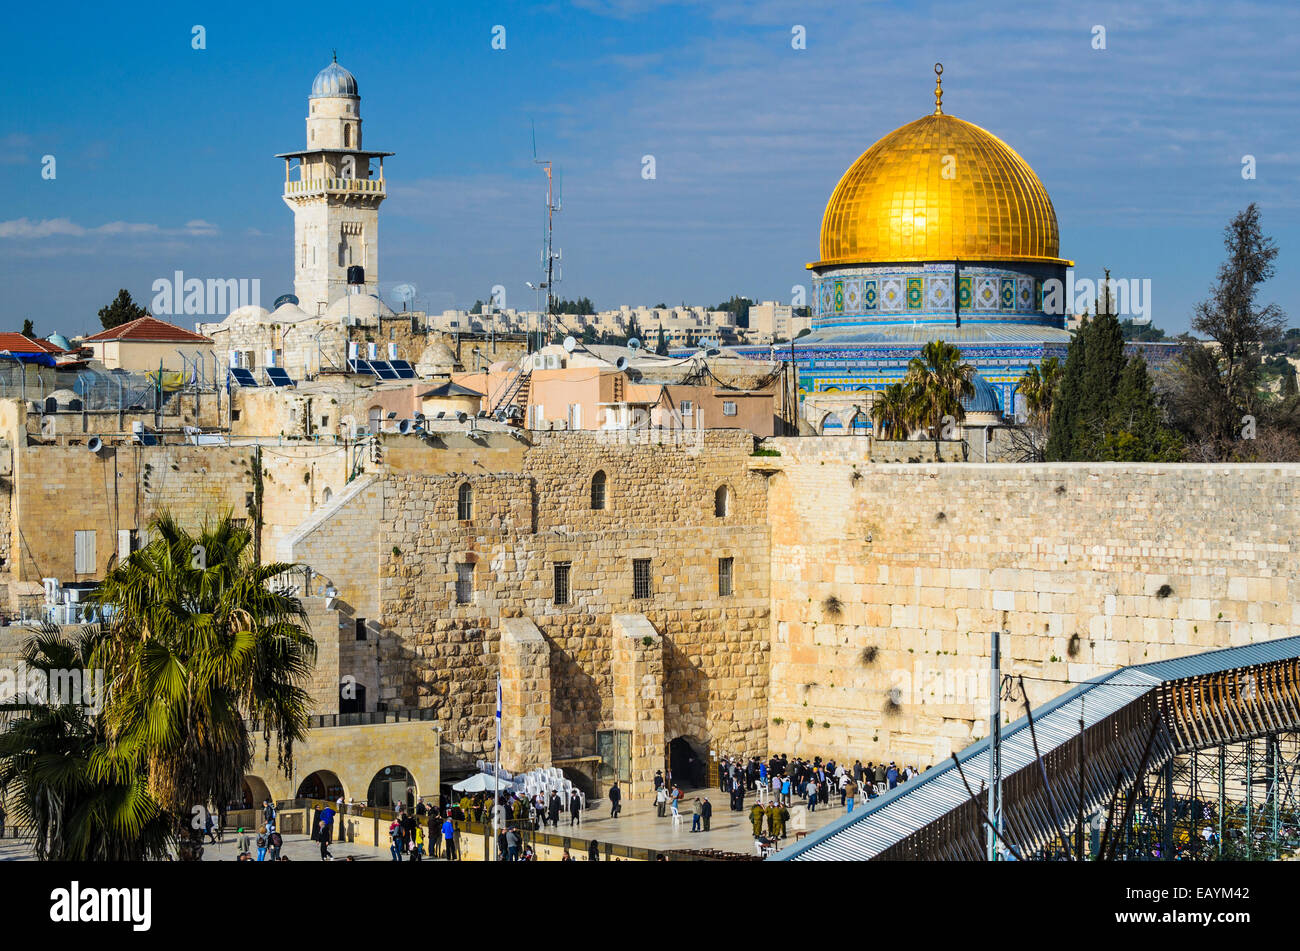 Jerusalem, Israel Old City cityscape at the Temple Mount and Dome of the Rock. - Stock Image